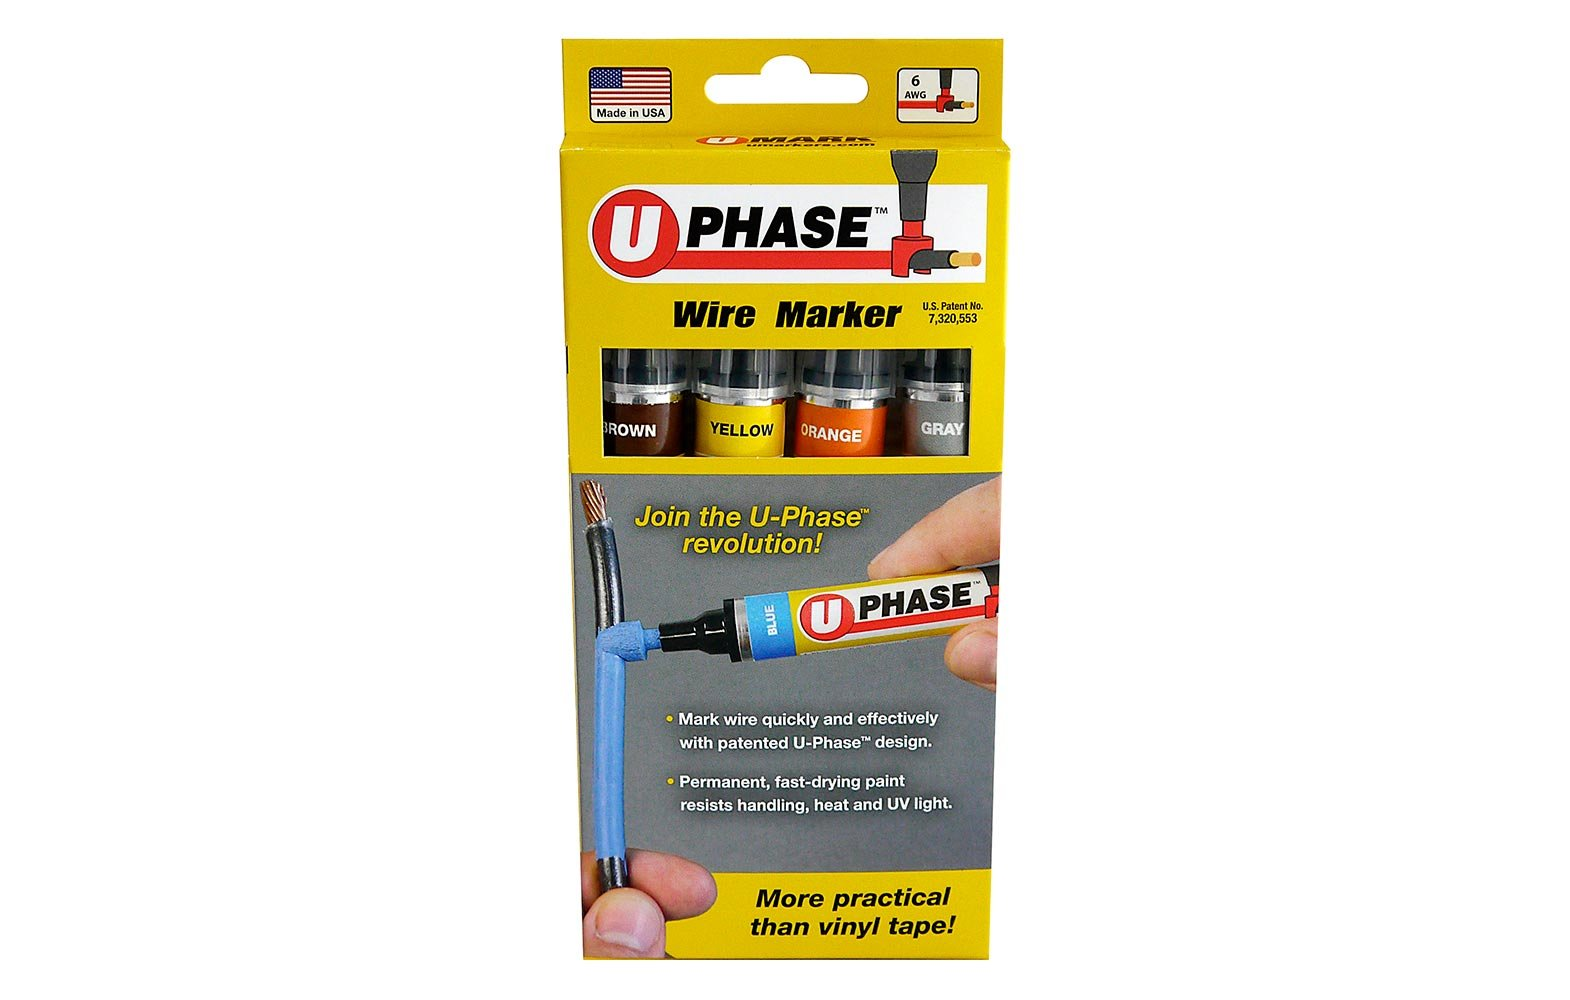 U-Mark 10718P3A Brown/Yellow/Orange/Gray U-Phase Marker for Marking Up to #6 AWG Electric Wire, 3-Phase, 13 mL (Pack of 4)